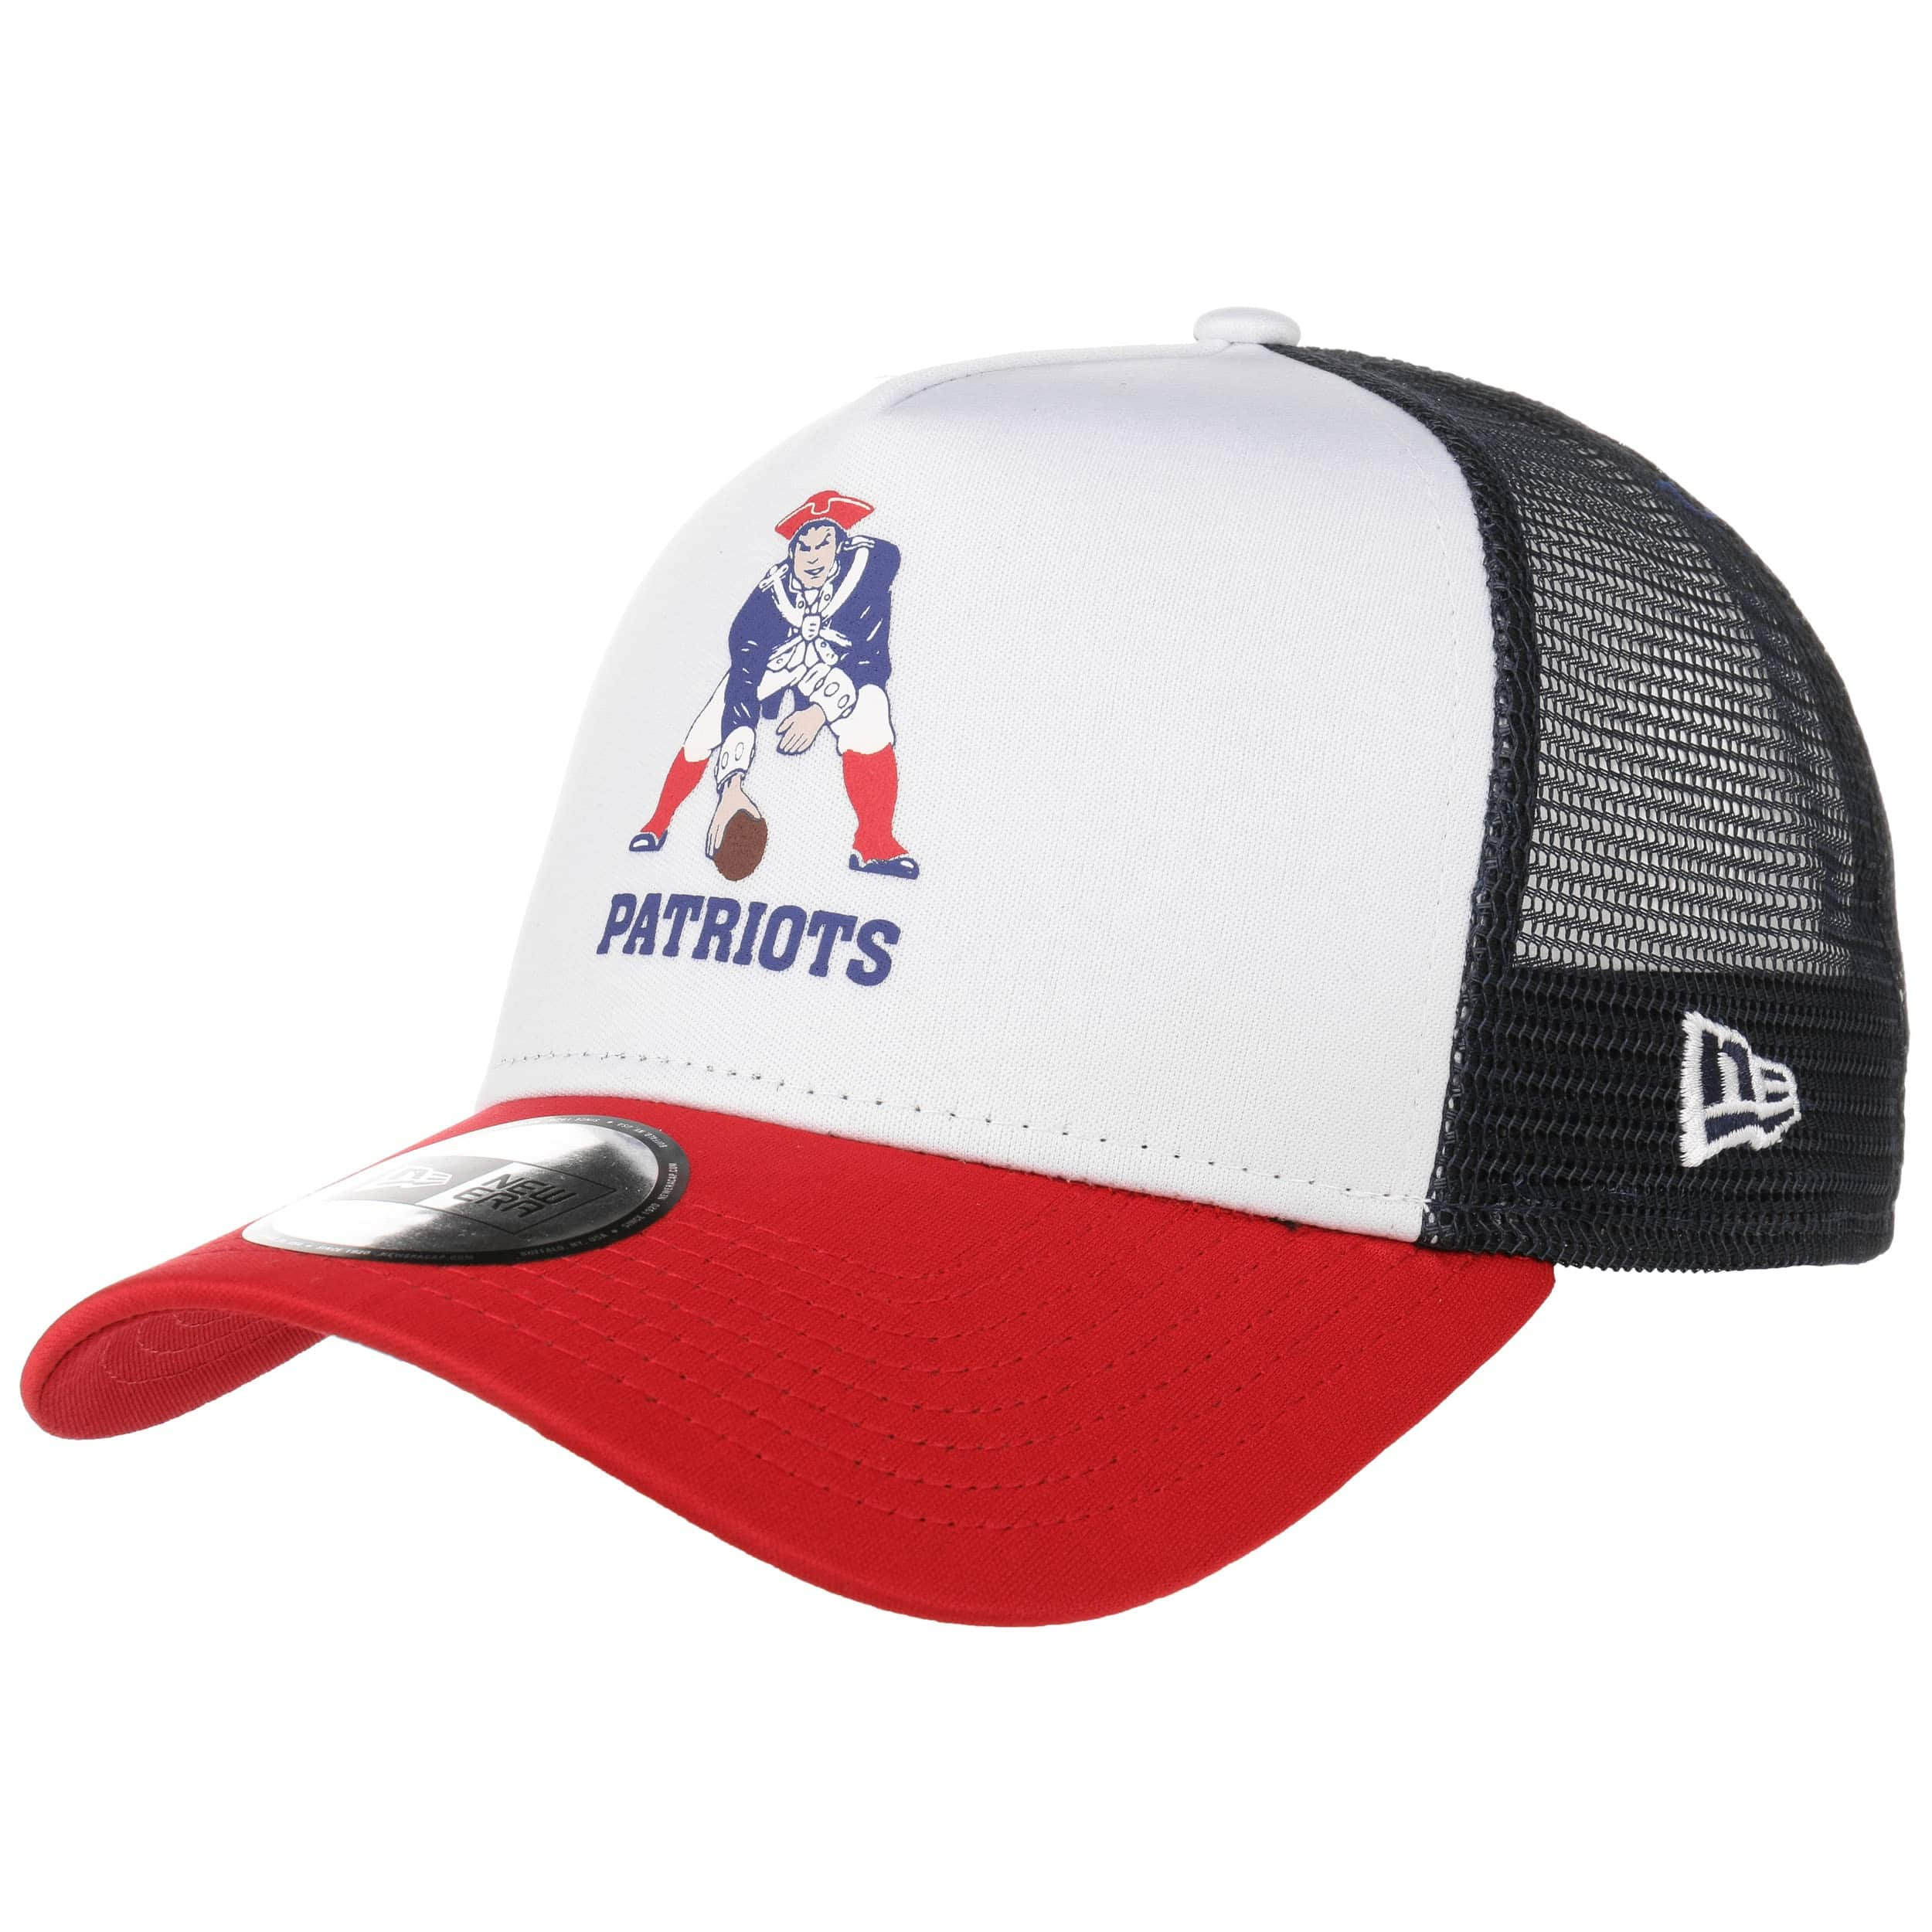 ... NFL Throwback Trucker Patriots Cap by New Era - white 6 22ed0be871e